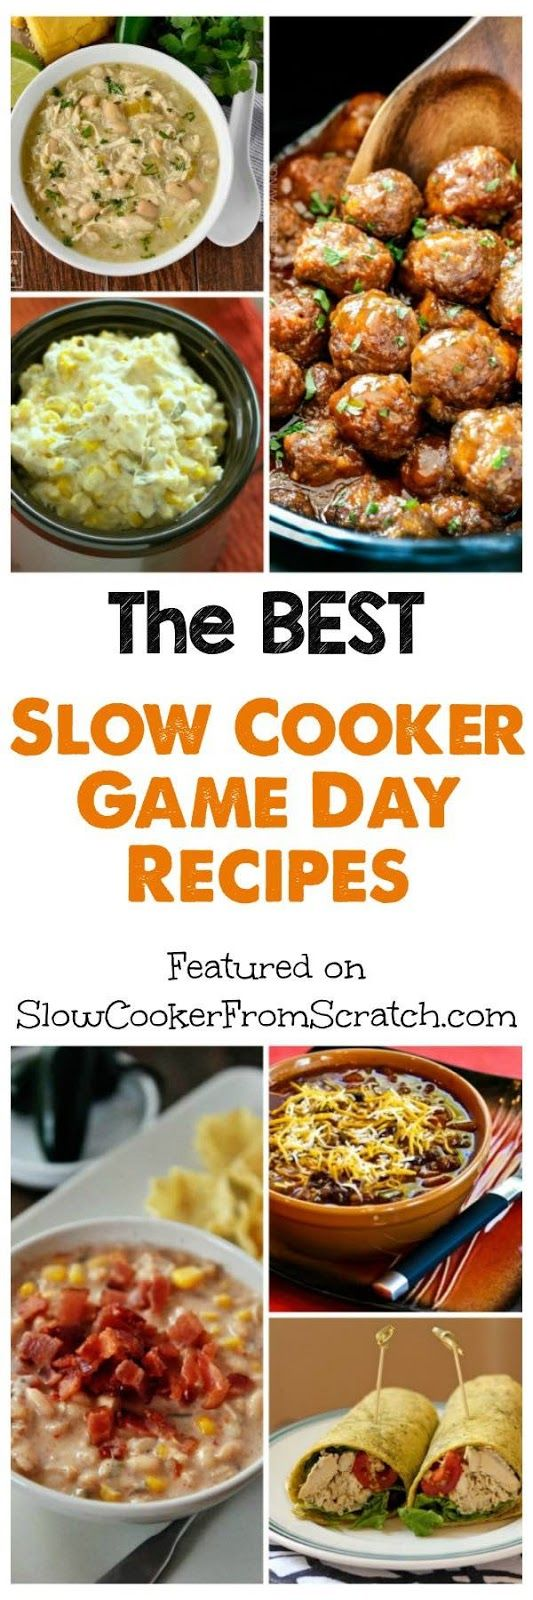 Here are The BEST Slow Cooker Game Day Recipes; using the slow cooker can make it a lot easy to create yummy food for football weekends or Super Bowl parties, and this post has all the recipes you need! [found on Slow Cooker from Scratch.com]